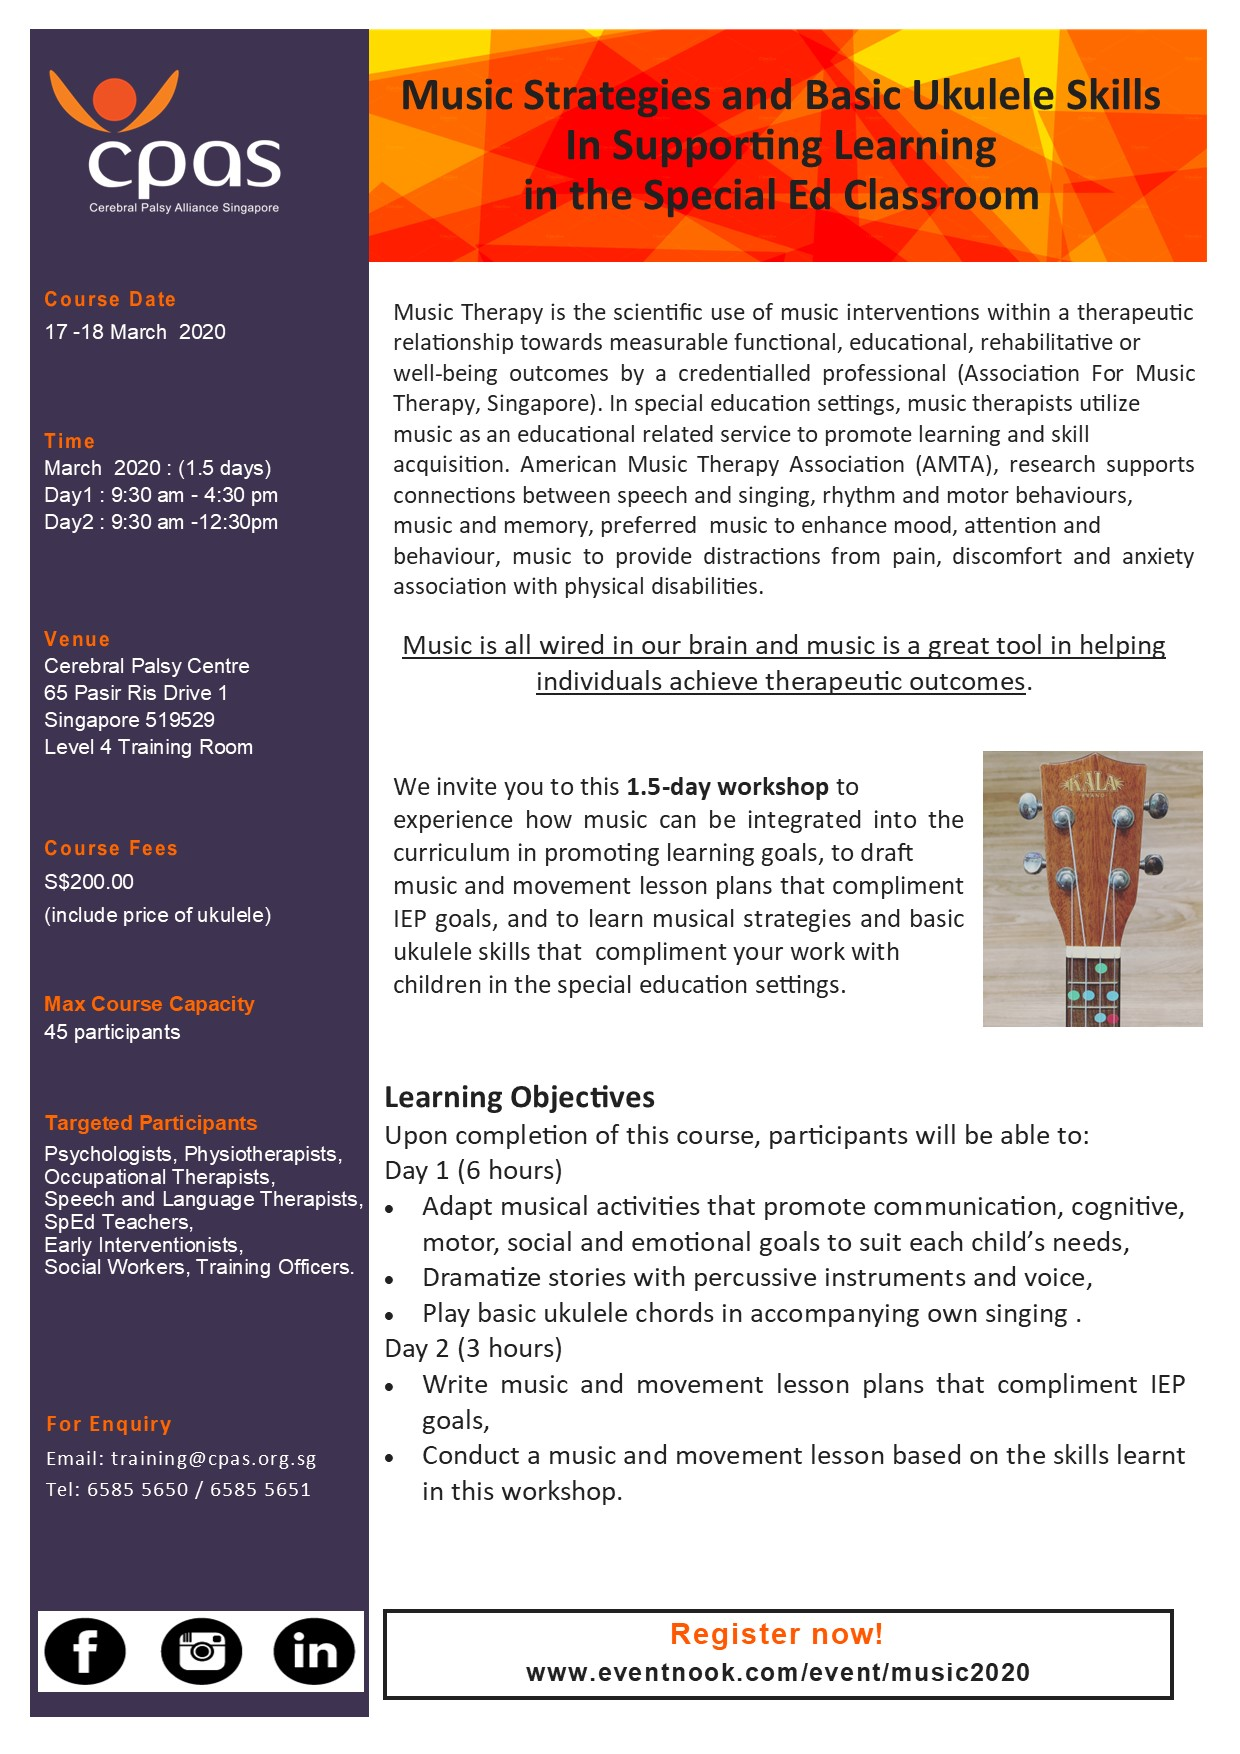 Music Strategies and Basic Ukulele Skills In Supporting Learning in the Special Ed Classroom